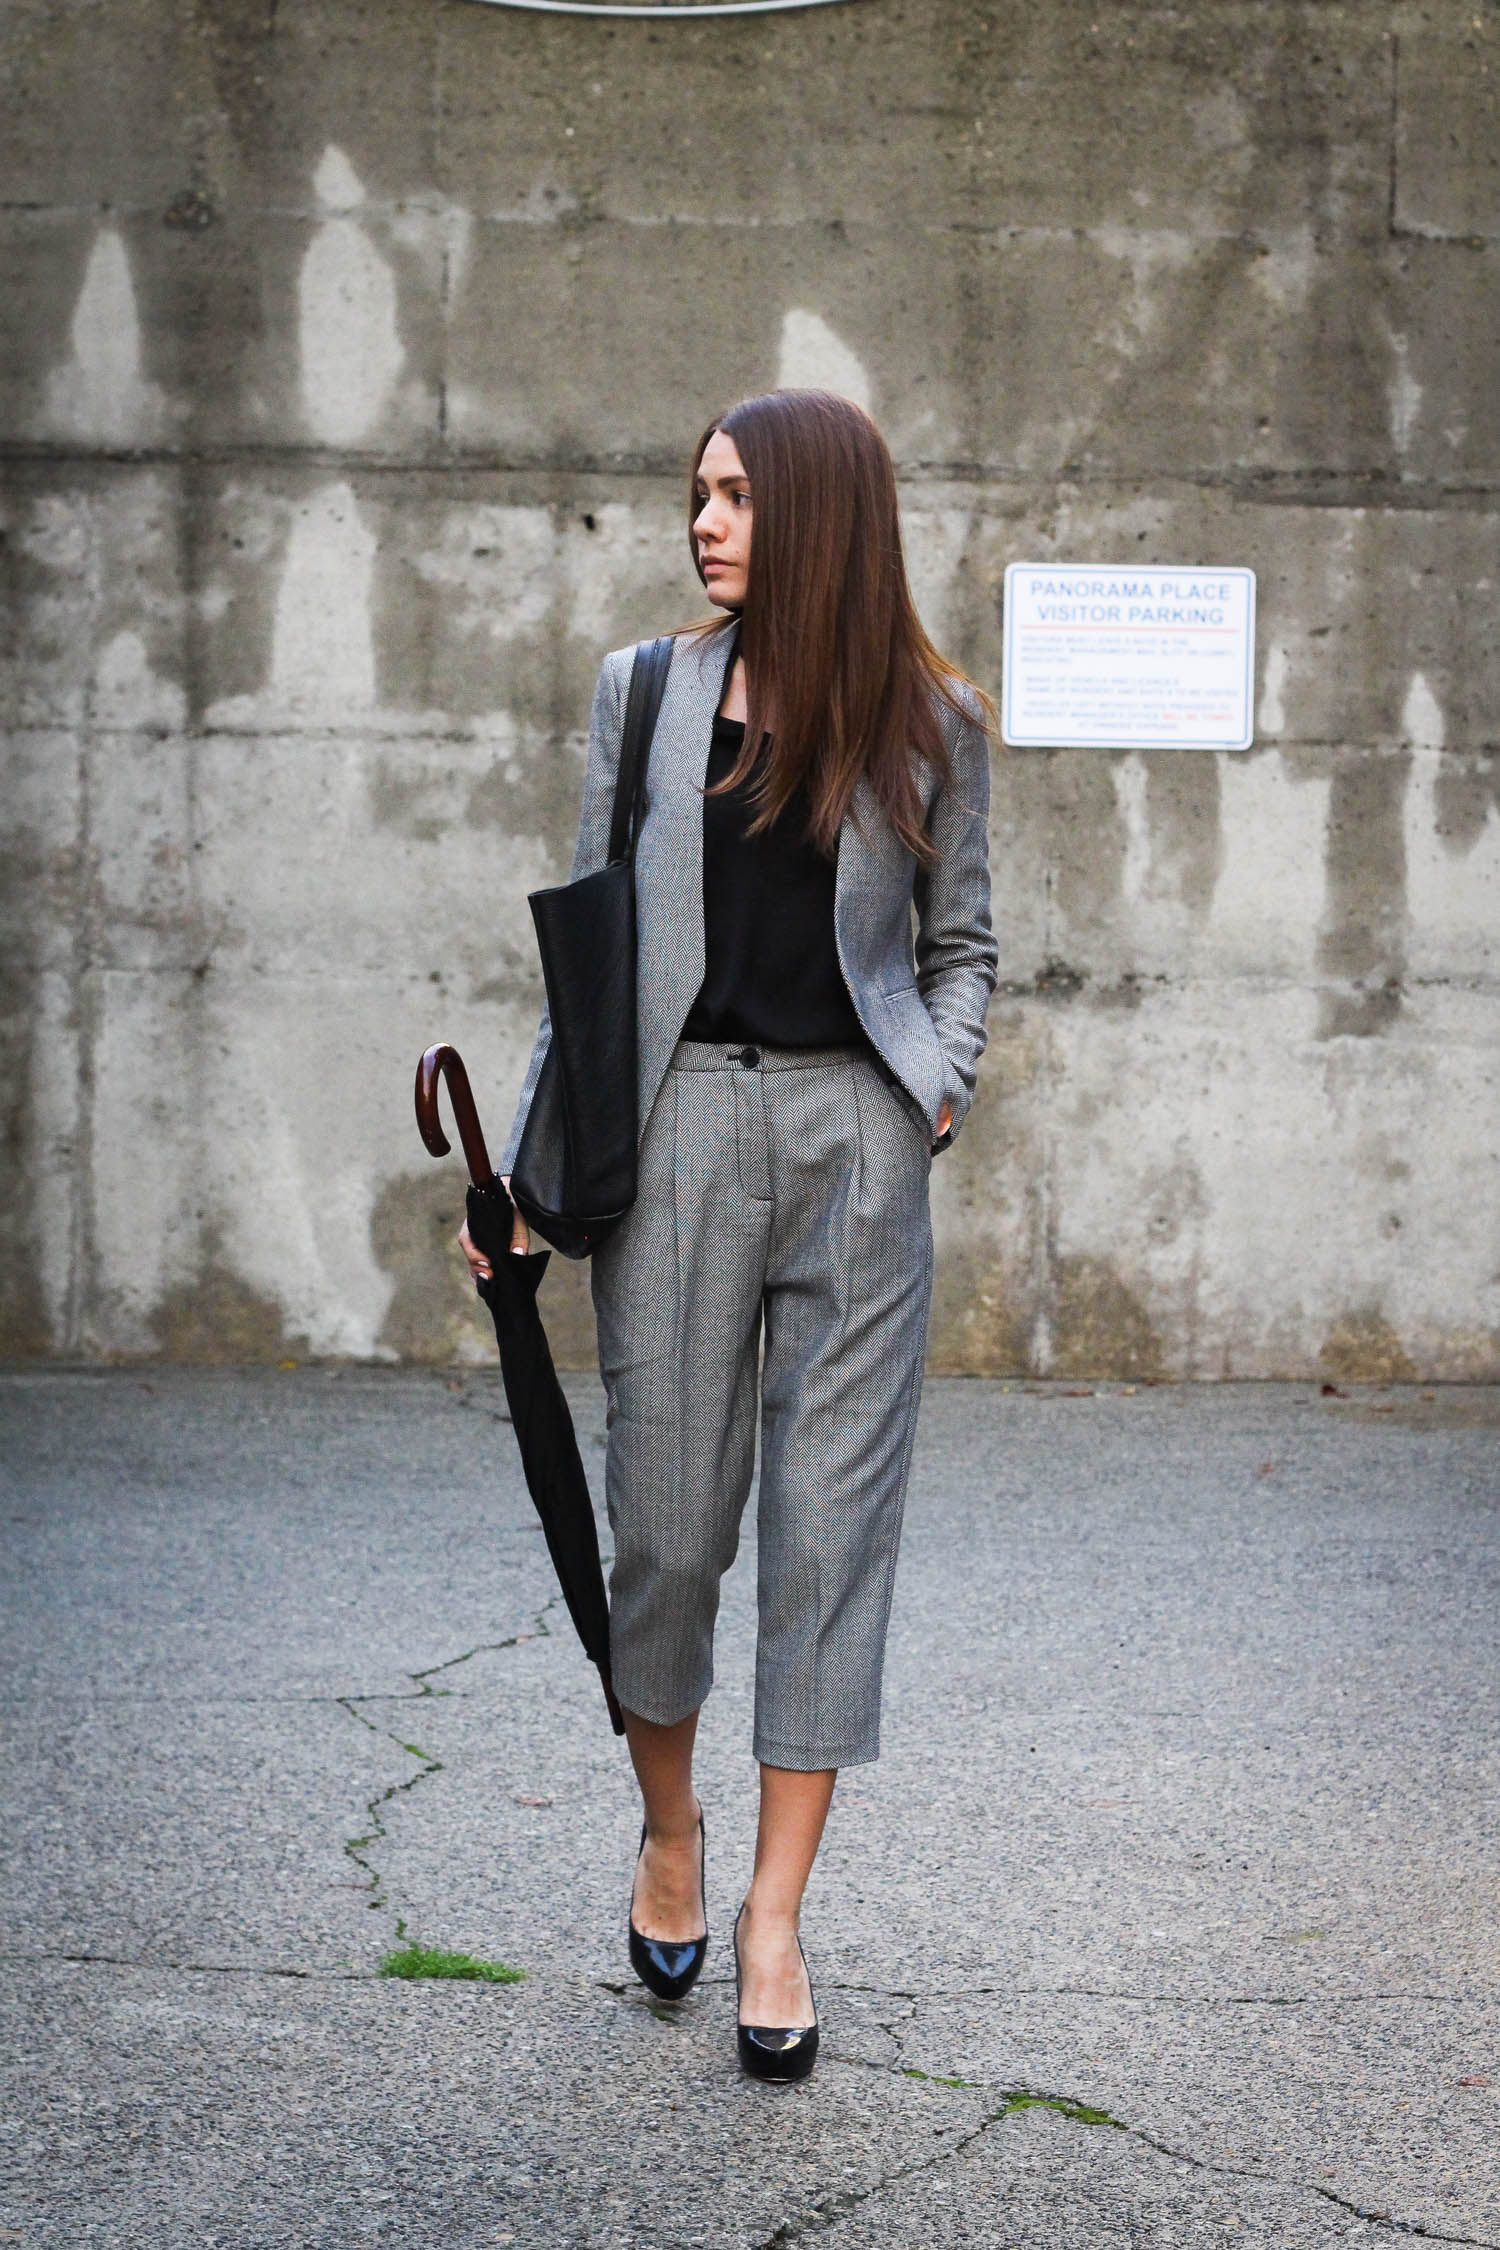 Wearing a women's suit by armani exchange